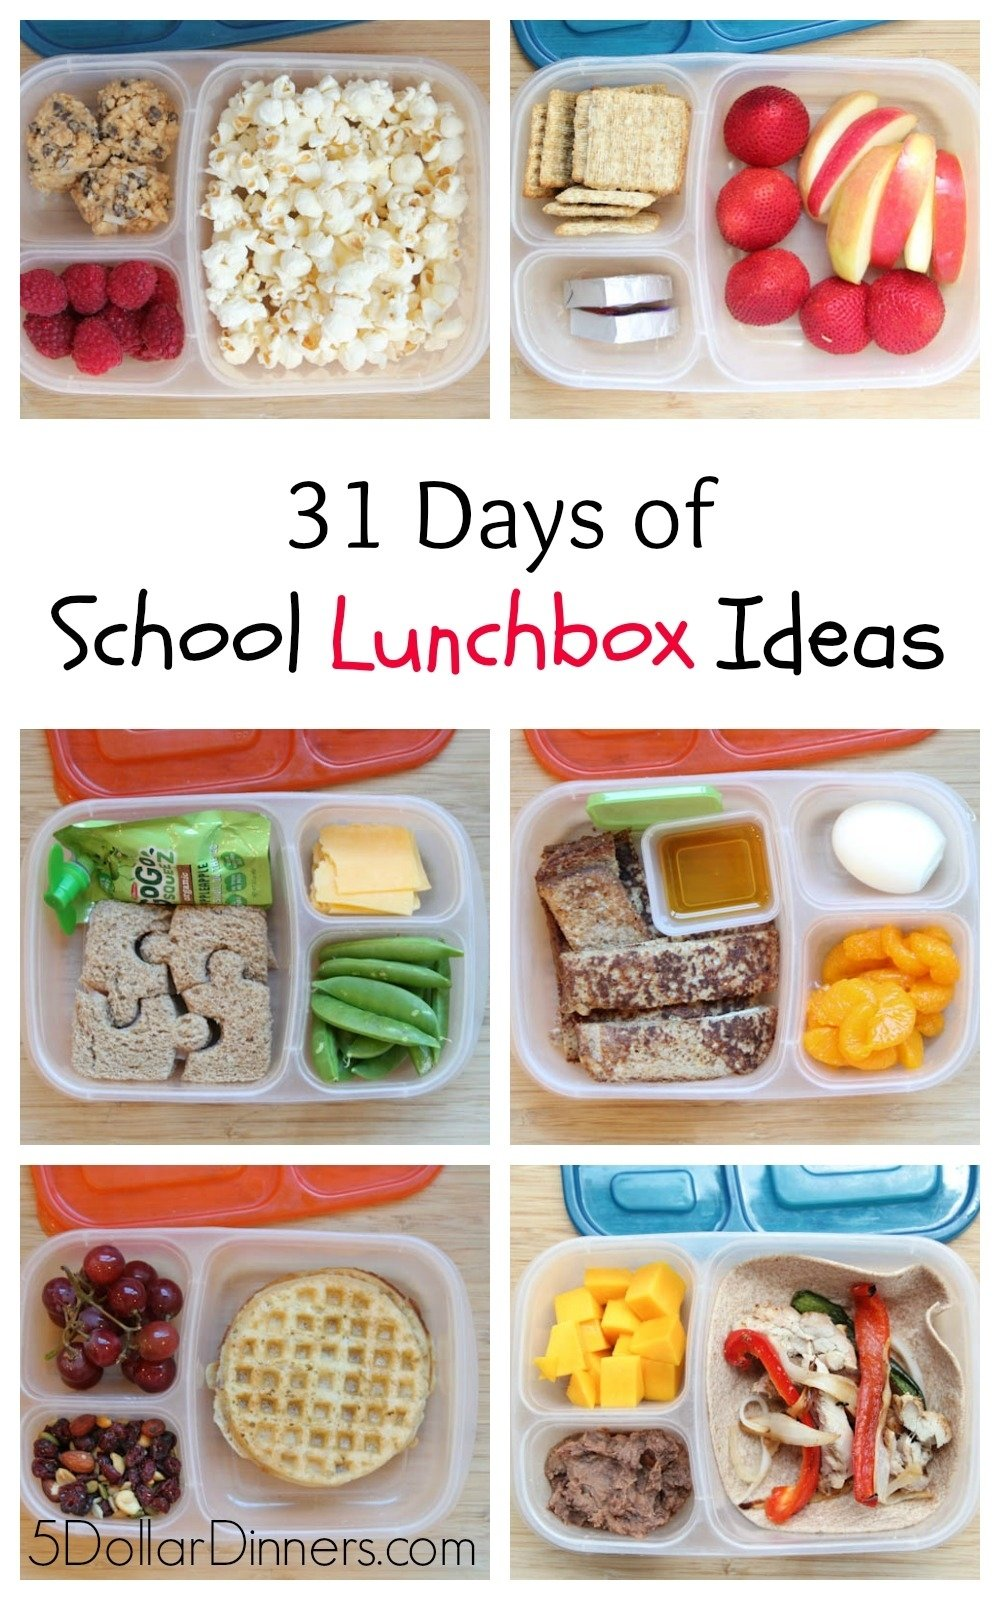 10 Great Lunch Box Ideas For Toddlers 31 days of school lunchbox ideas sq 2 2021